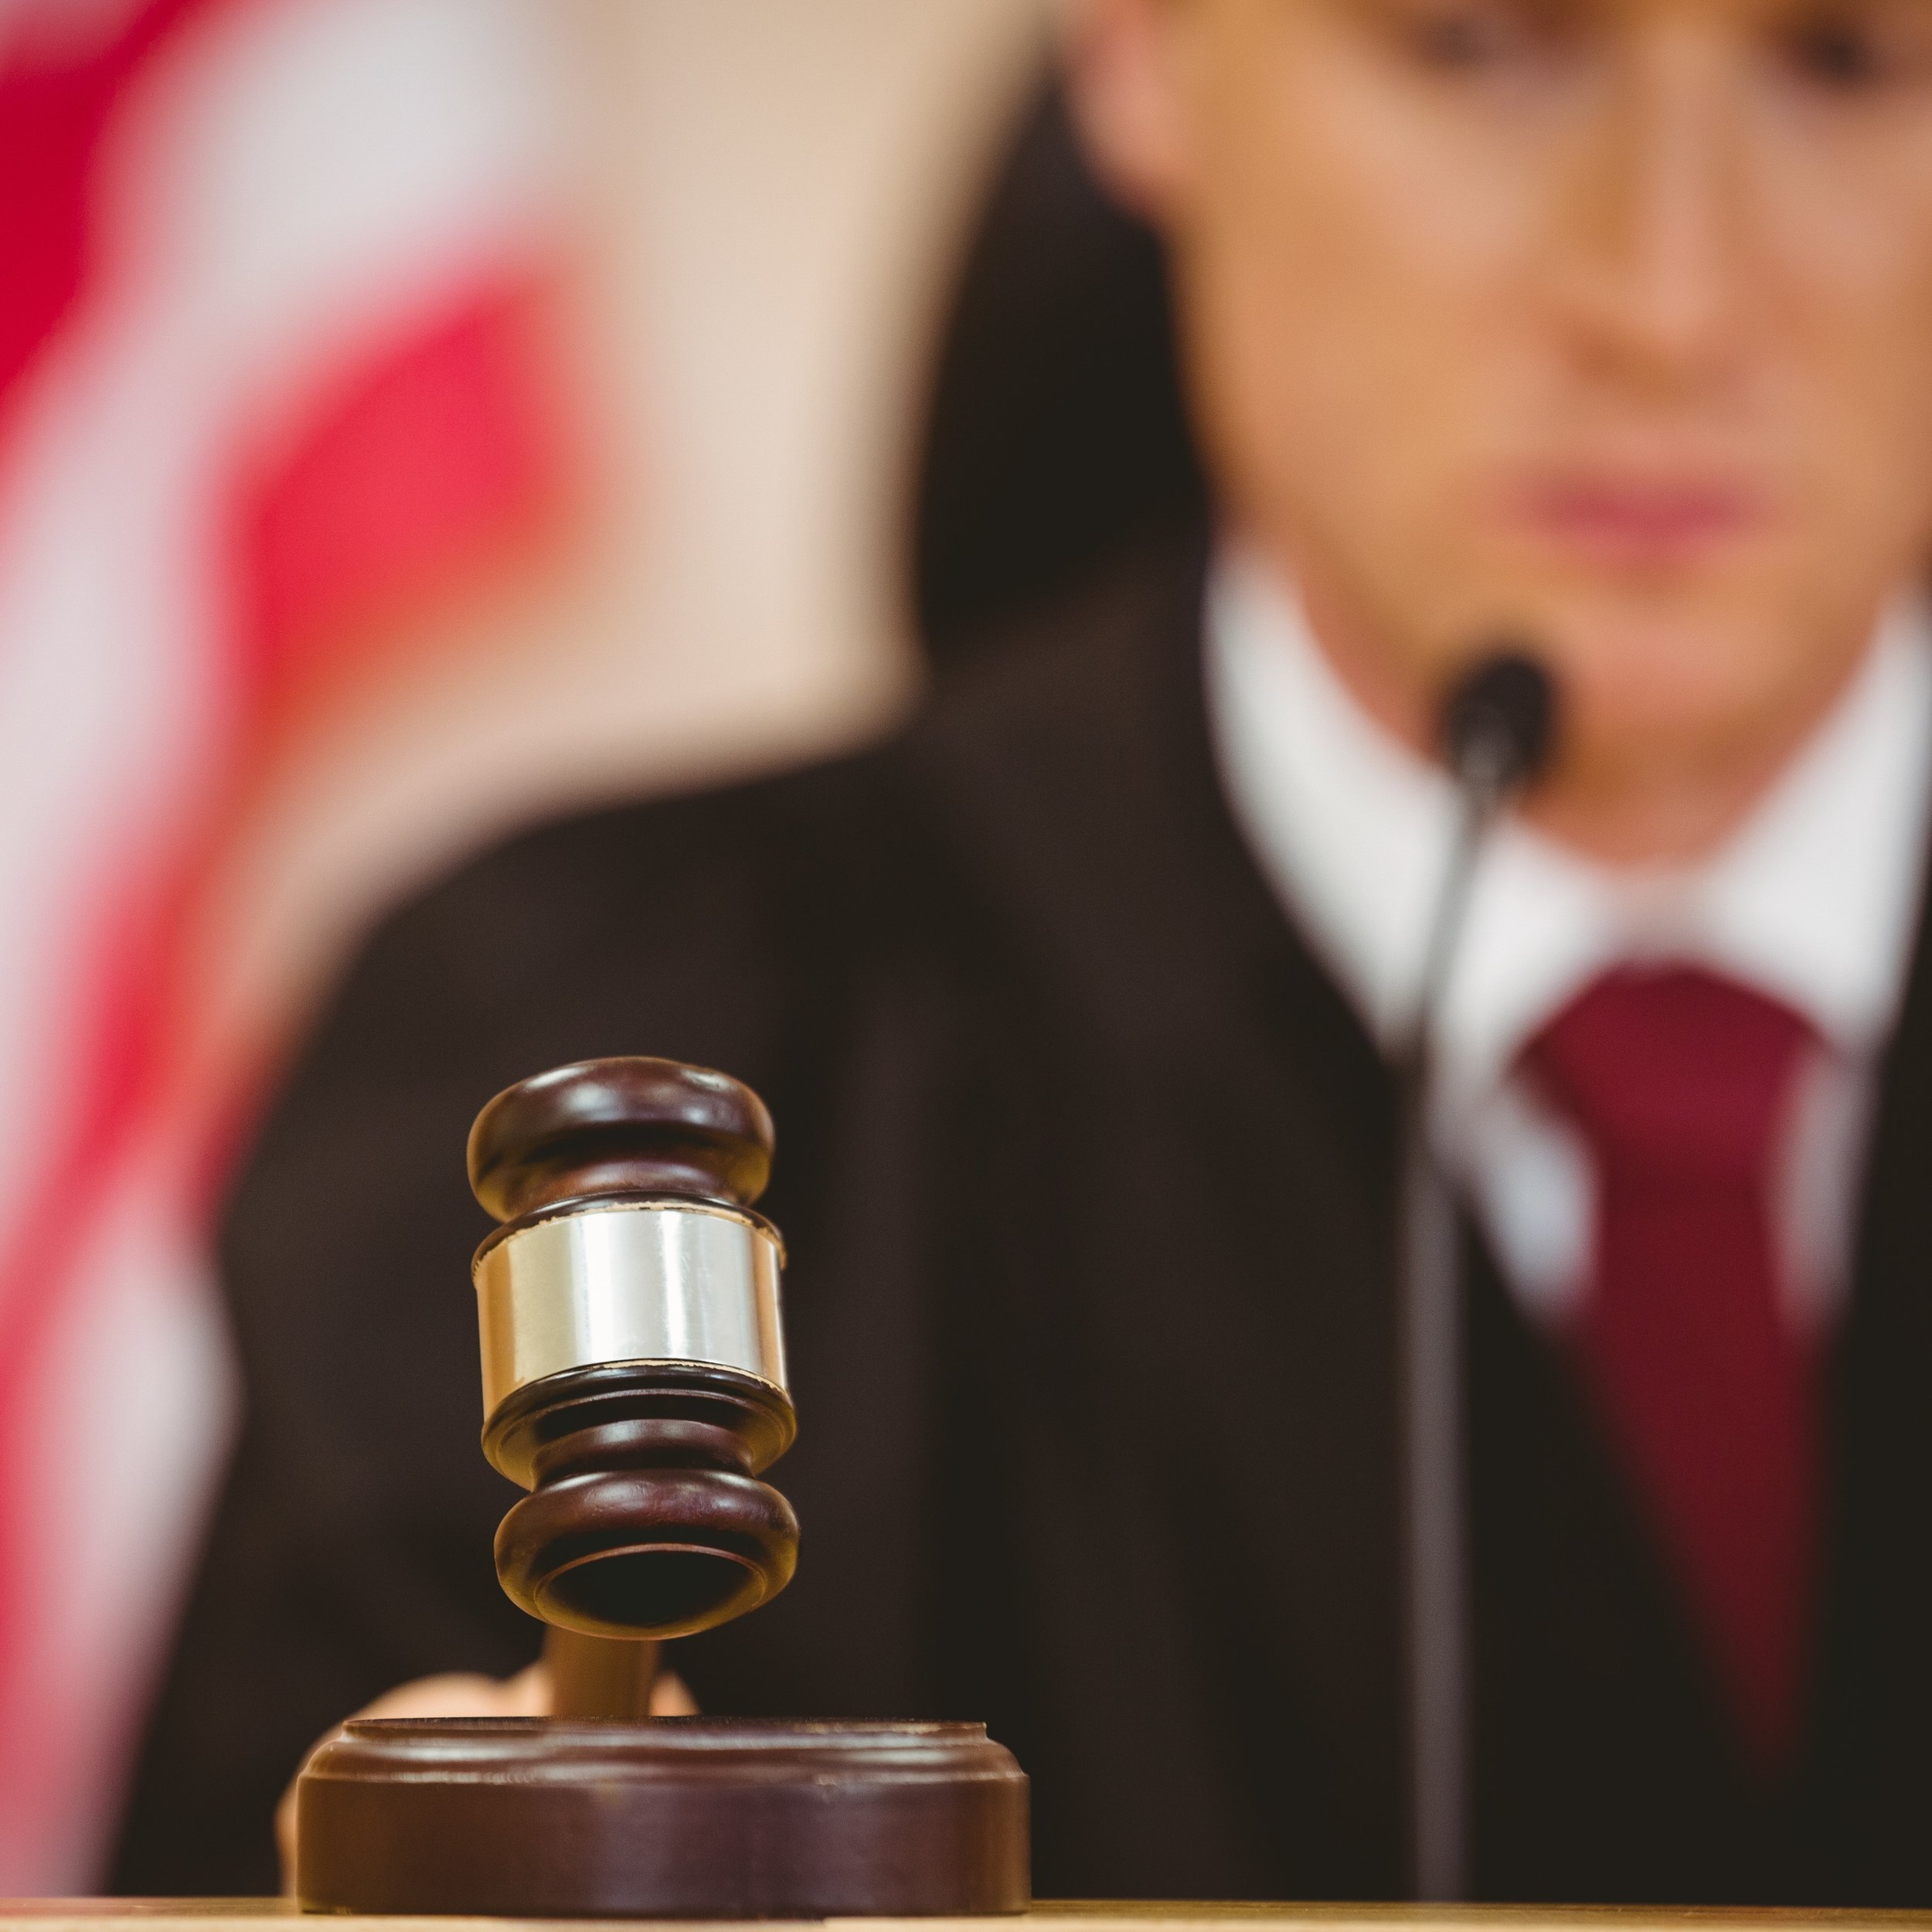 Collection Lawsuits - Find out what to do if a collection lawsuit is brought against you and what recourse you have when a lawsuit is brought against you for a debt you don't owe or that was already paid.